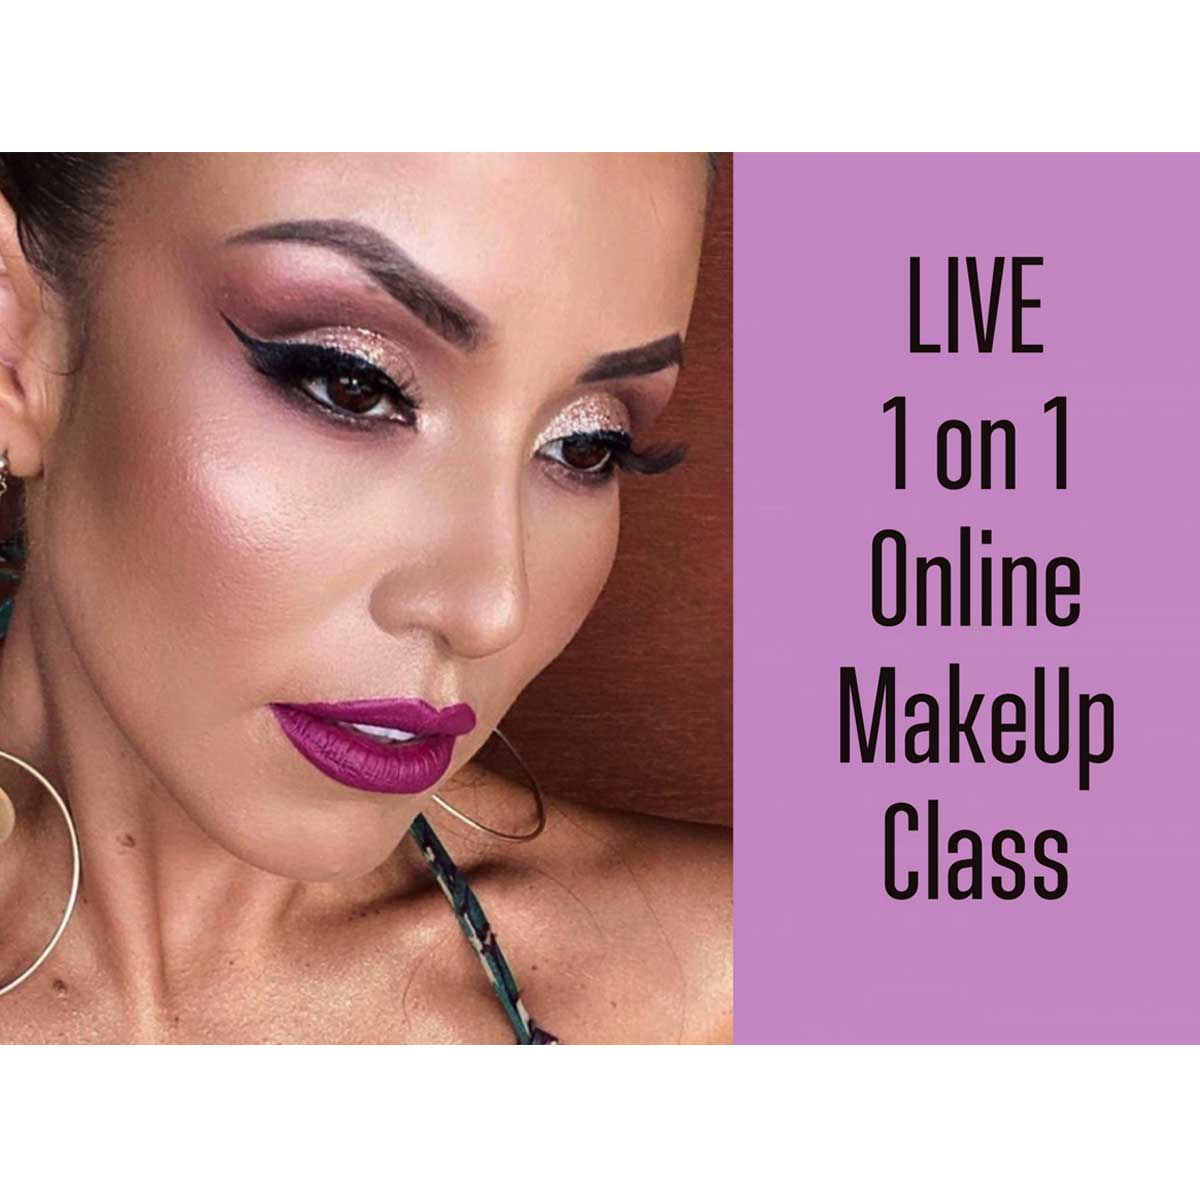 LIVE 1 On 1 Online MakeUp Lesson – One Hour